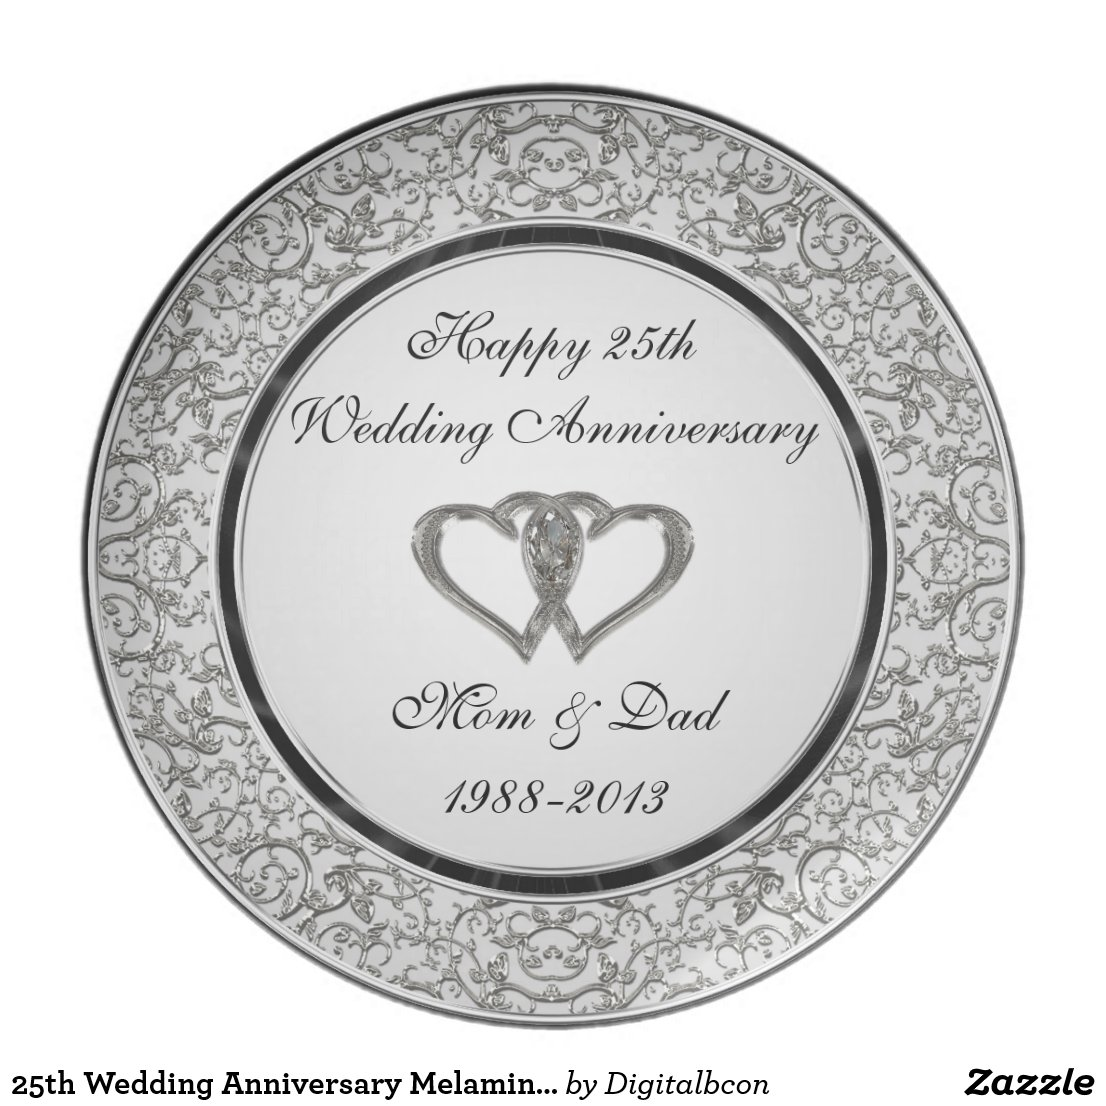 25th Wedding Anniversary Melamine Plate